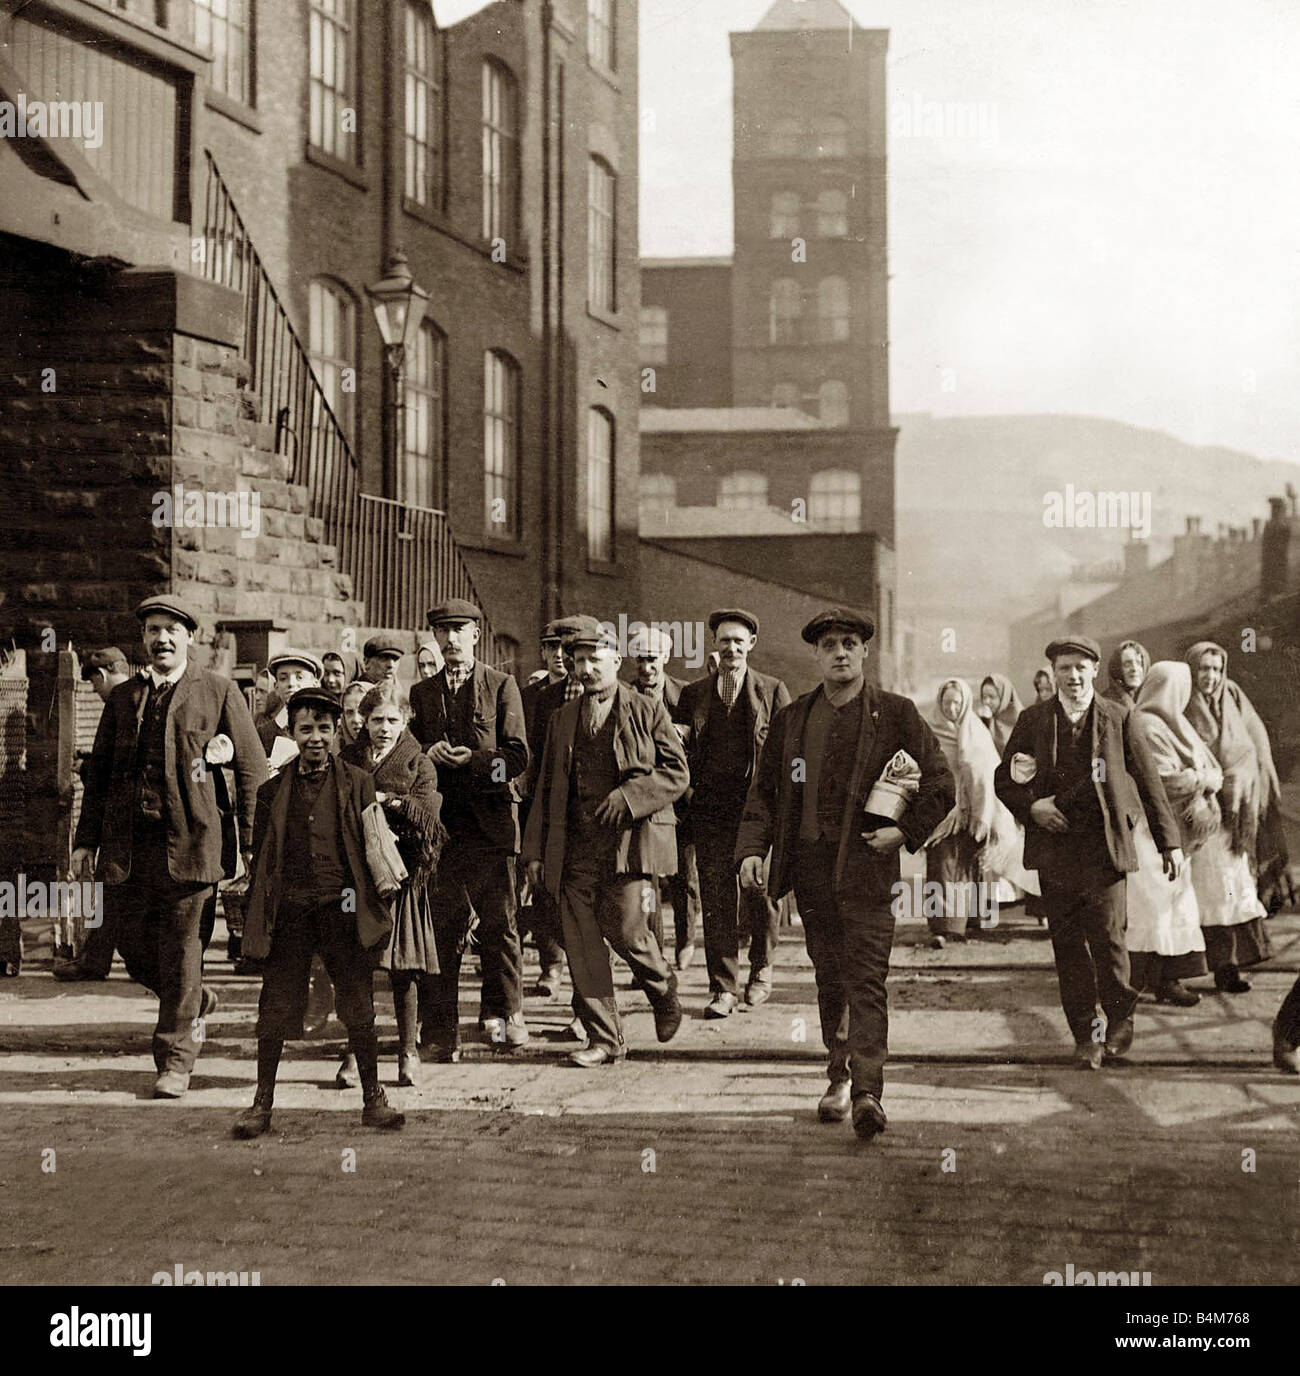 Lancashire Cotton Lock Out Operatives Leaving the Mills textile industry factory workers walking out 1910 - Stock Image